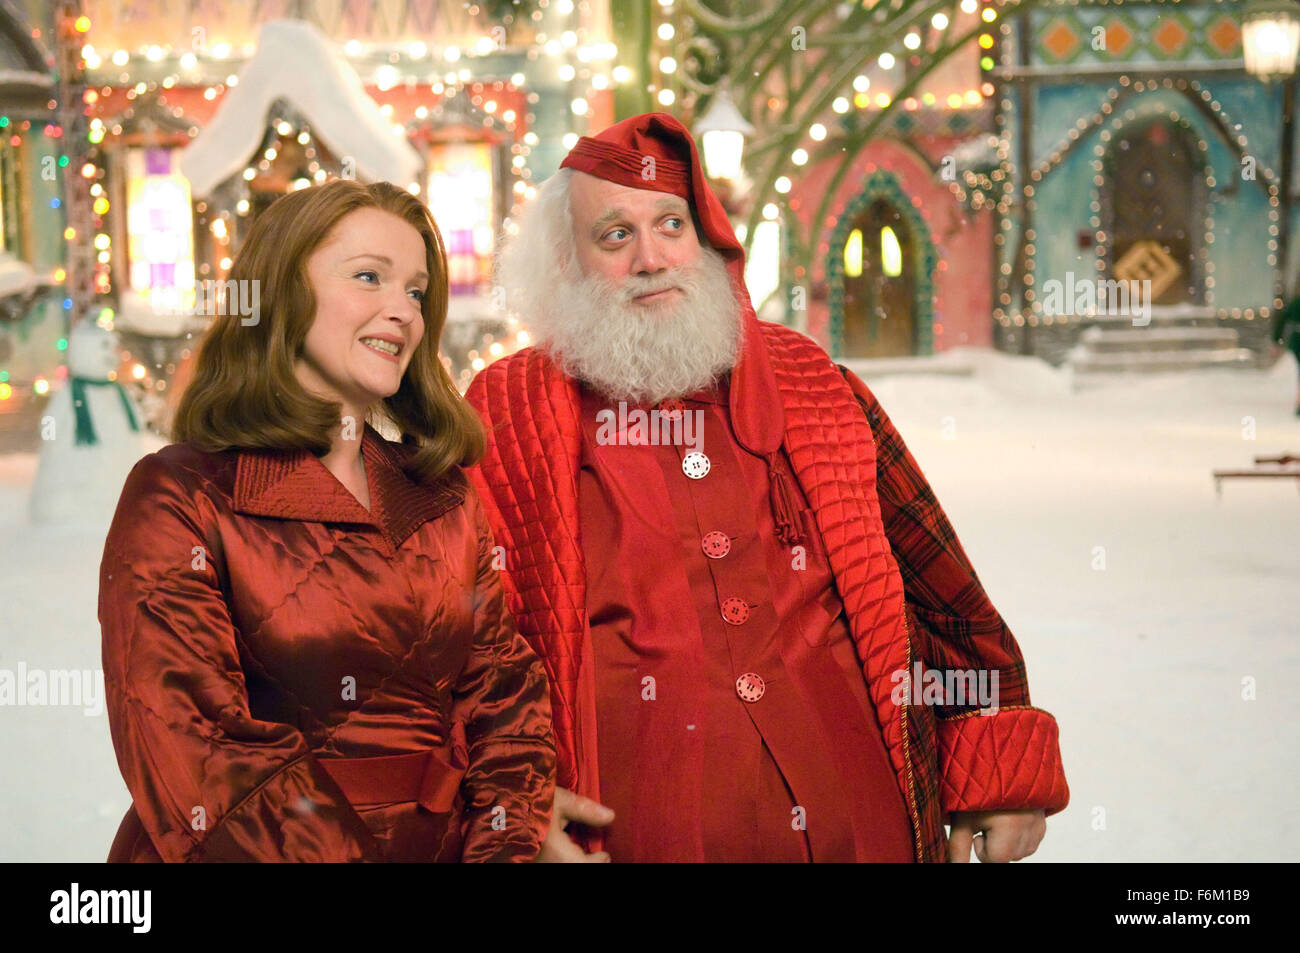 RELEASE DATE: Nov 03, 2007. MOVIE TITLE: Fred Claus. STUDIO: Silver ...